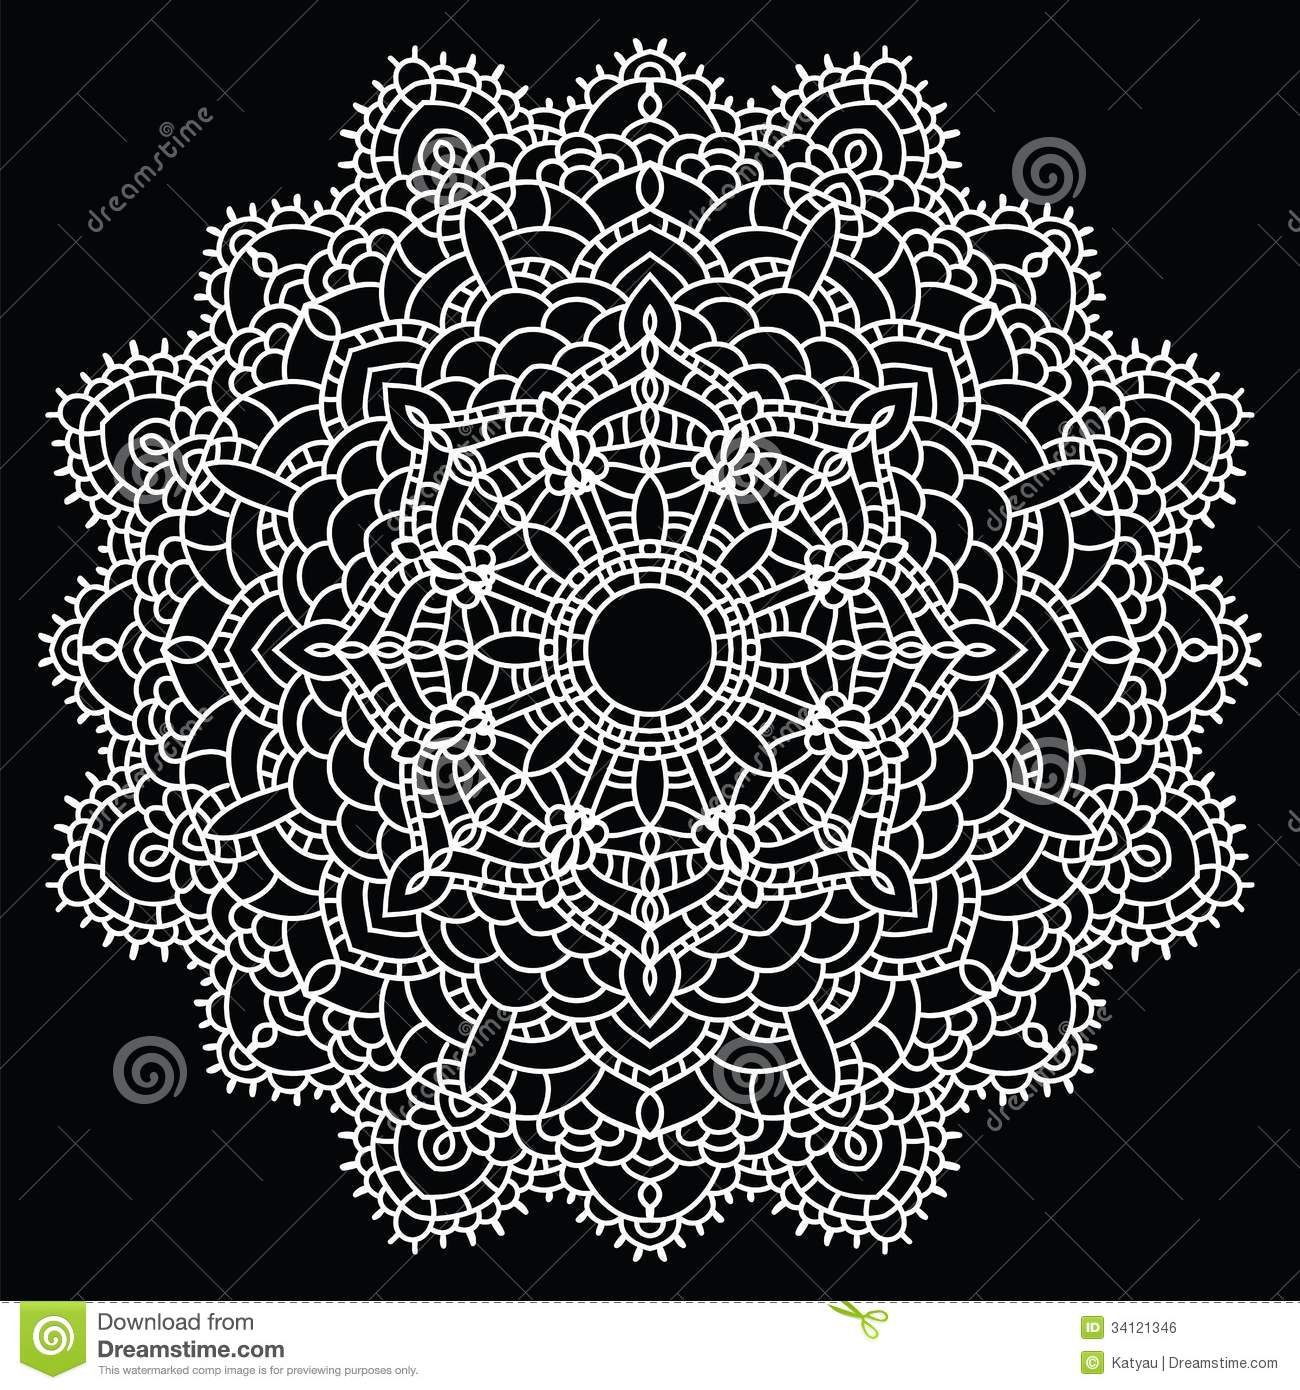 Lace doily henna flower vector illustration design - Handmade Knitted Doily Round Lace Pattern Vector Illustration